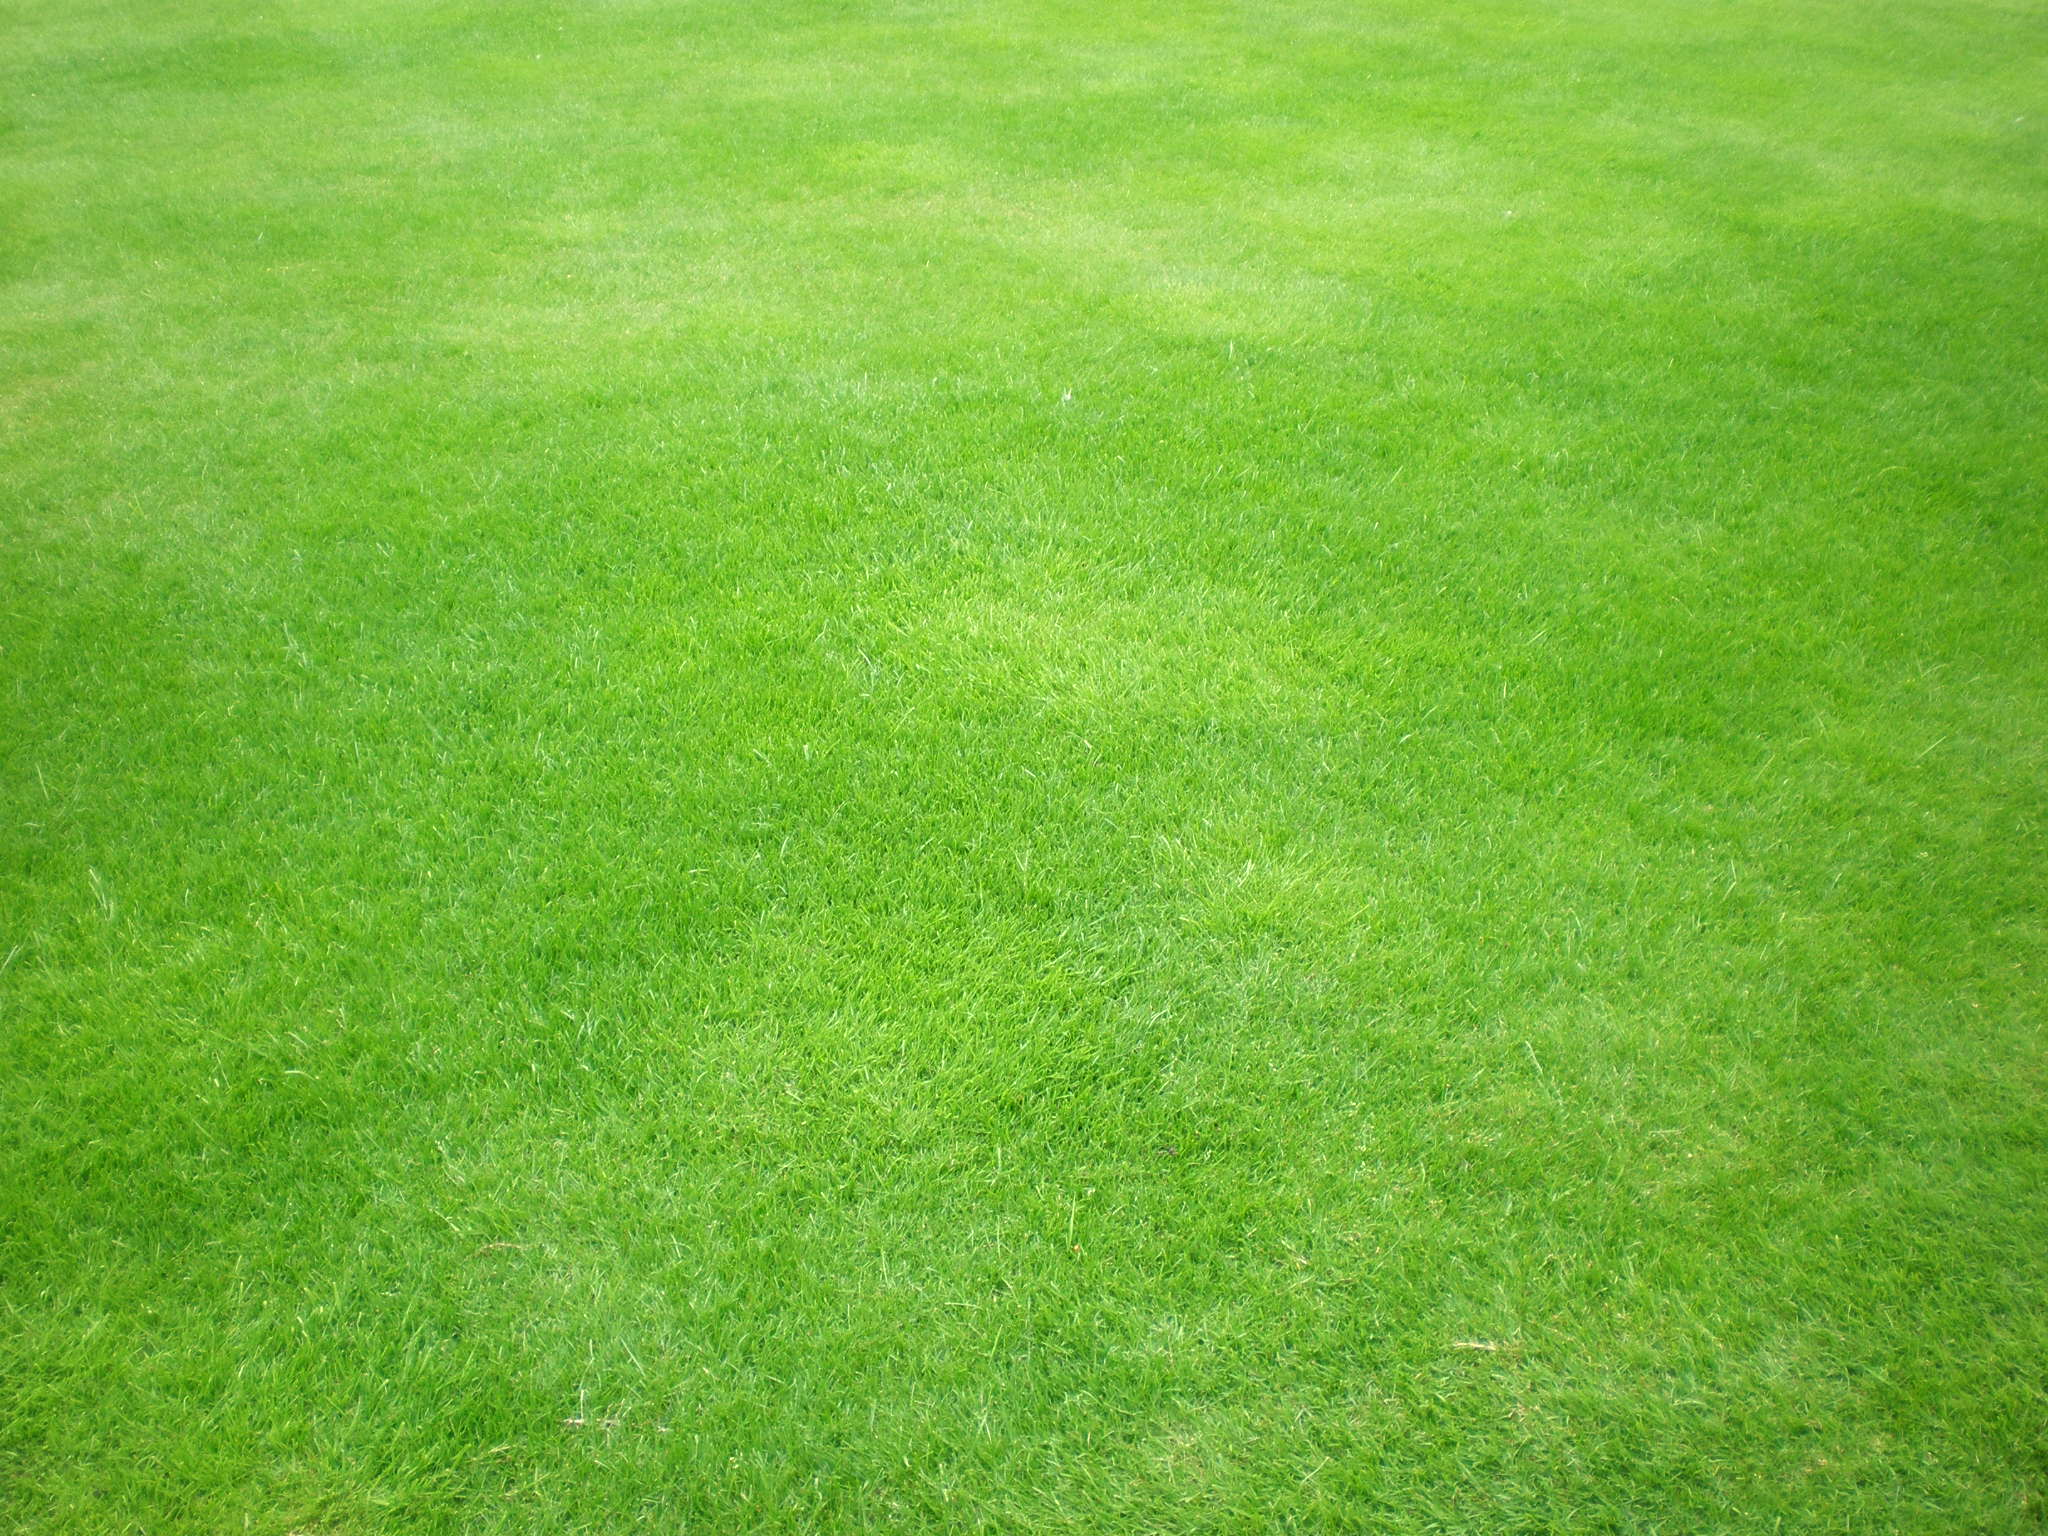 grass texture by jnetlakni resources stock images textures other 2011 ...